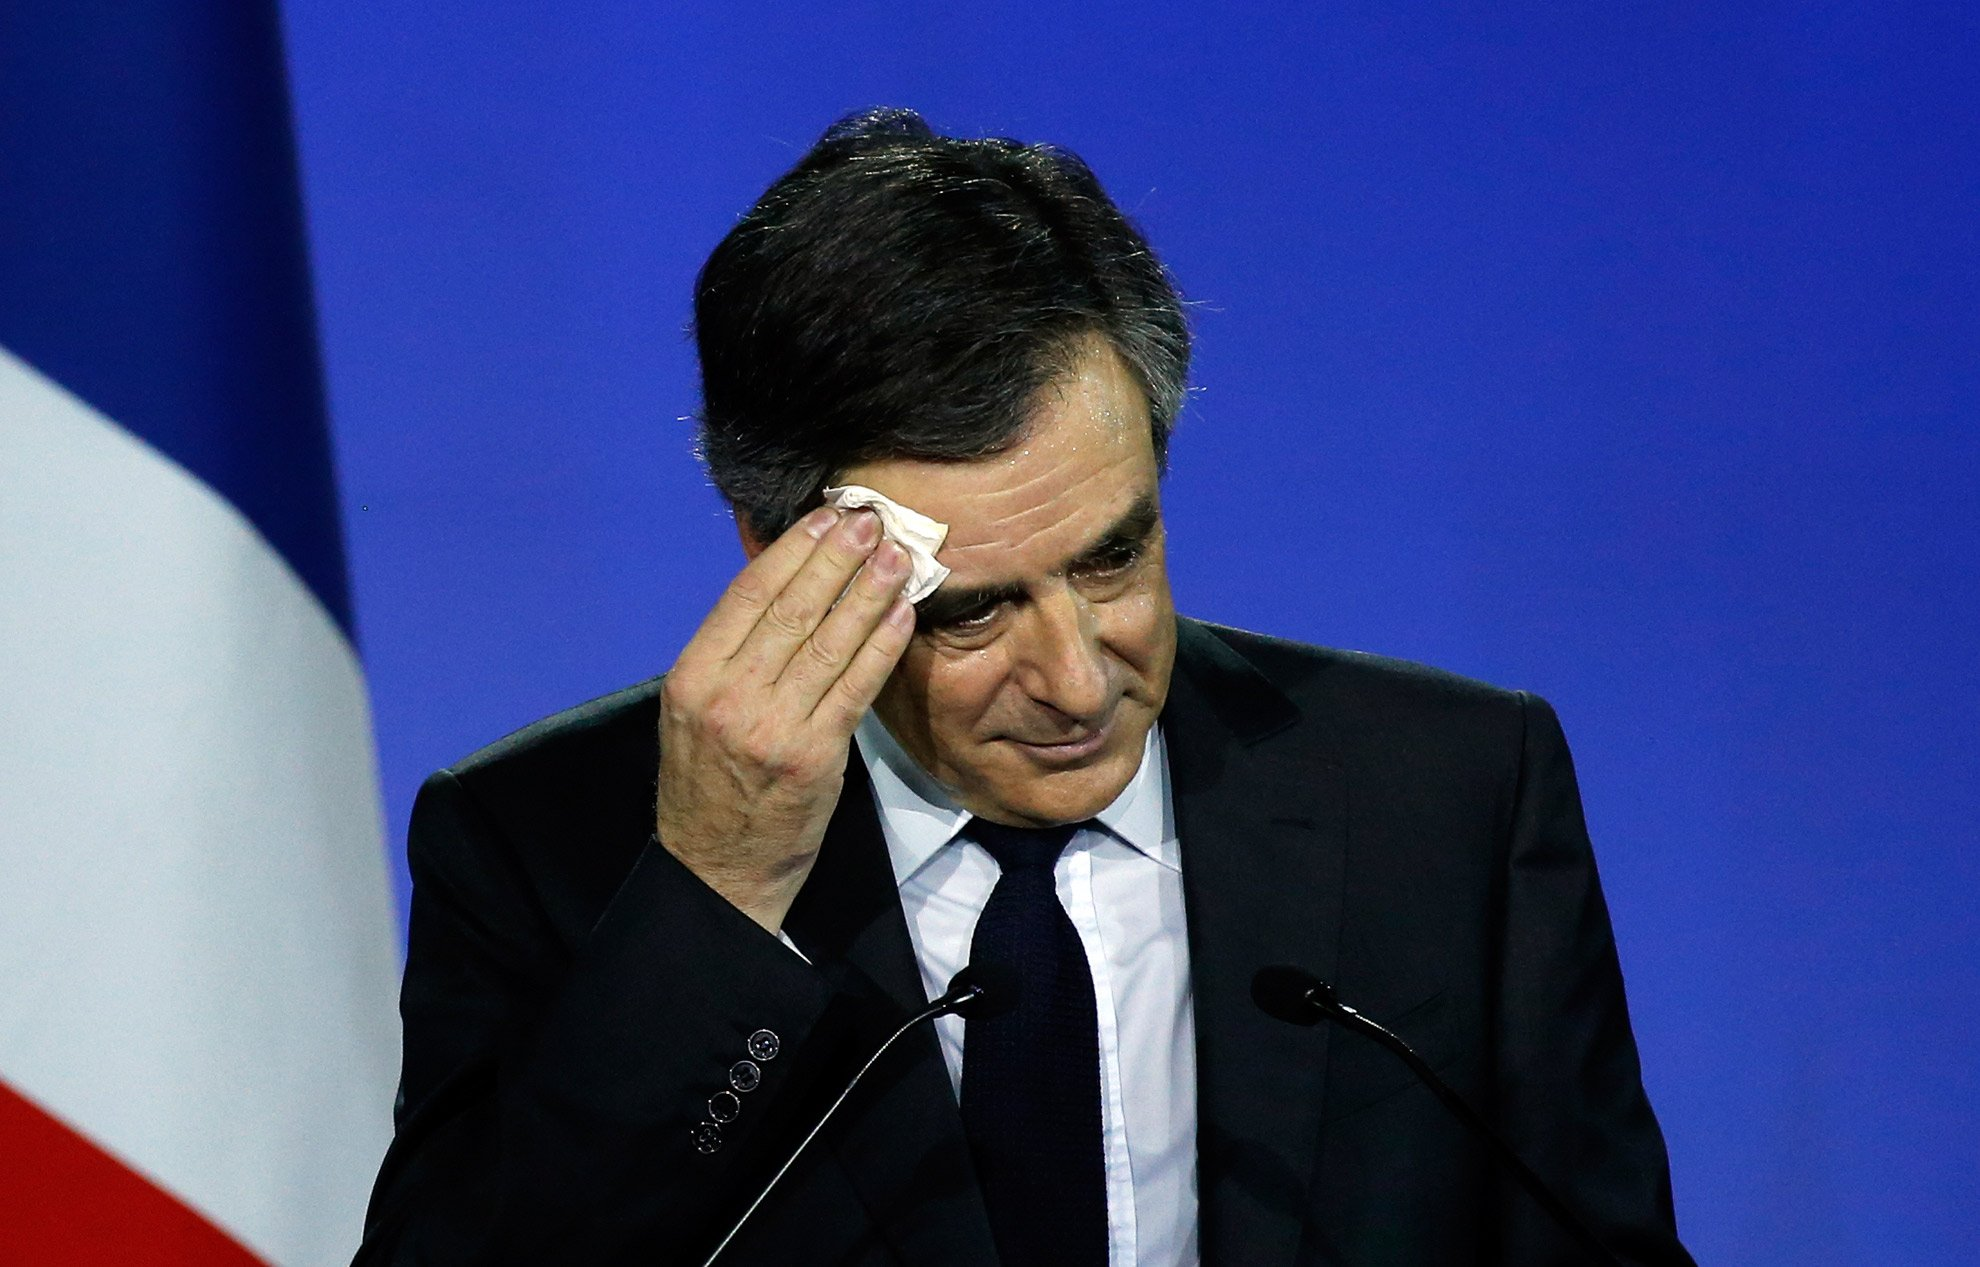 Quand François Fillon entend 'Corruption' et 'Fraude fiscale' #LeGrandDebat #DebatTF1 https://t.co/LKchbT4KRX